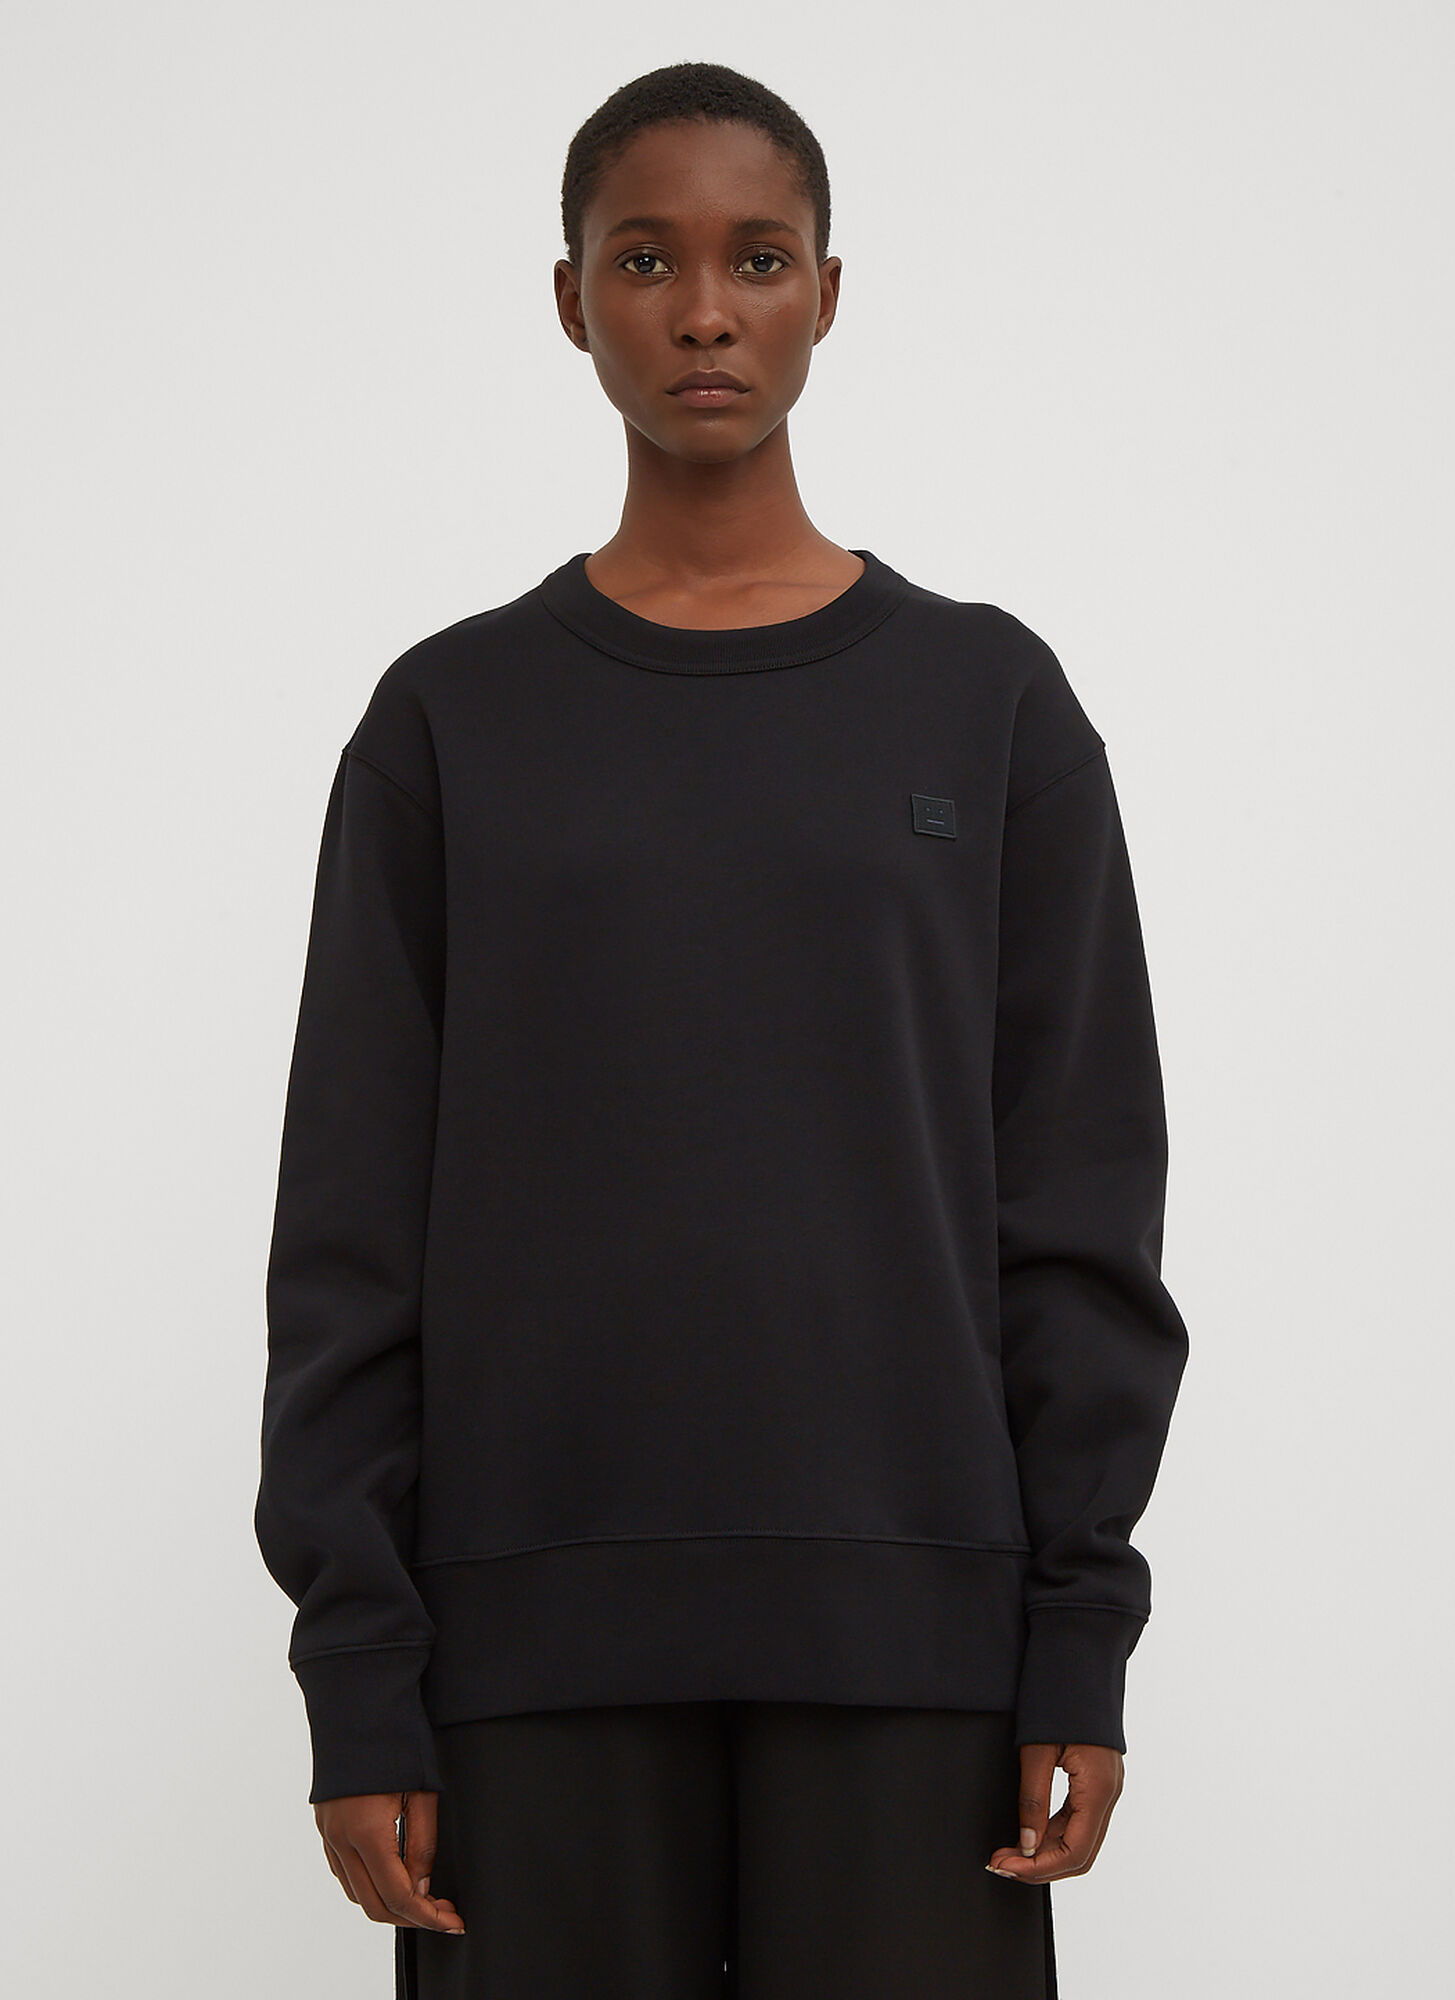 Acne Studios Fairview Oversized Face Embroidered Sweater in Black